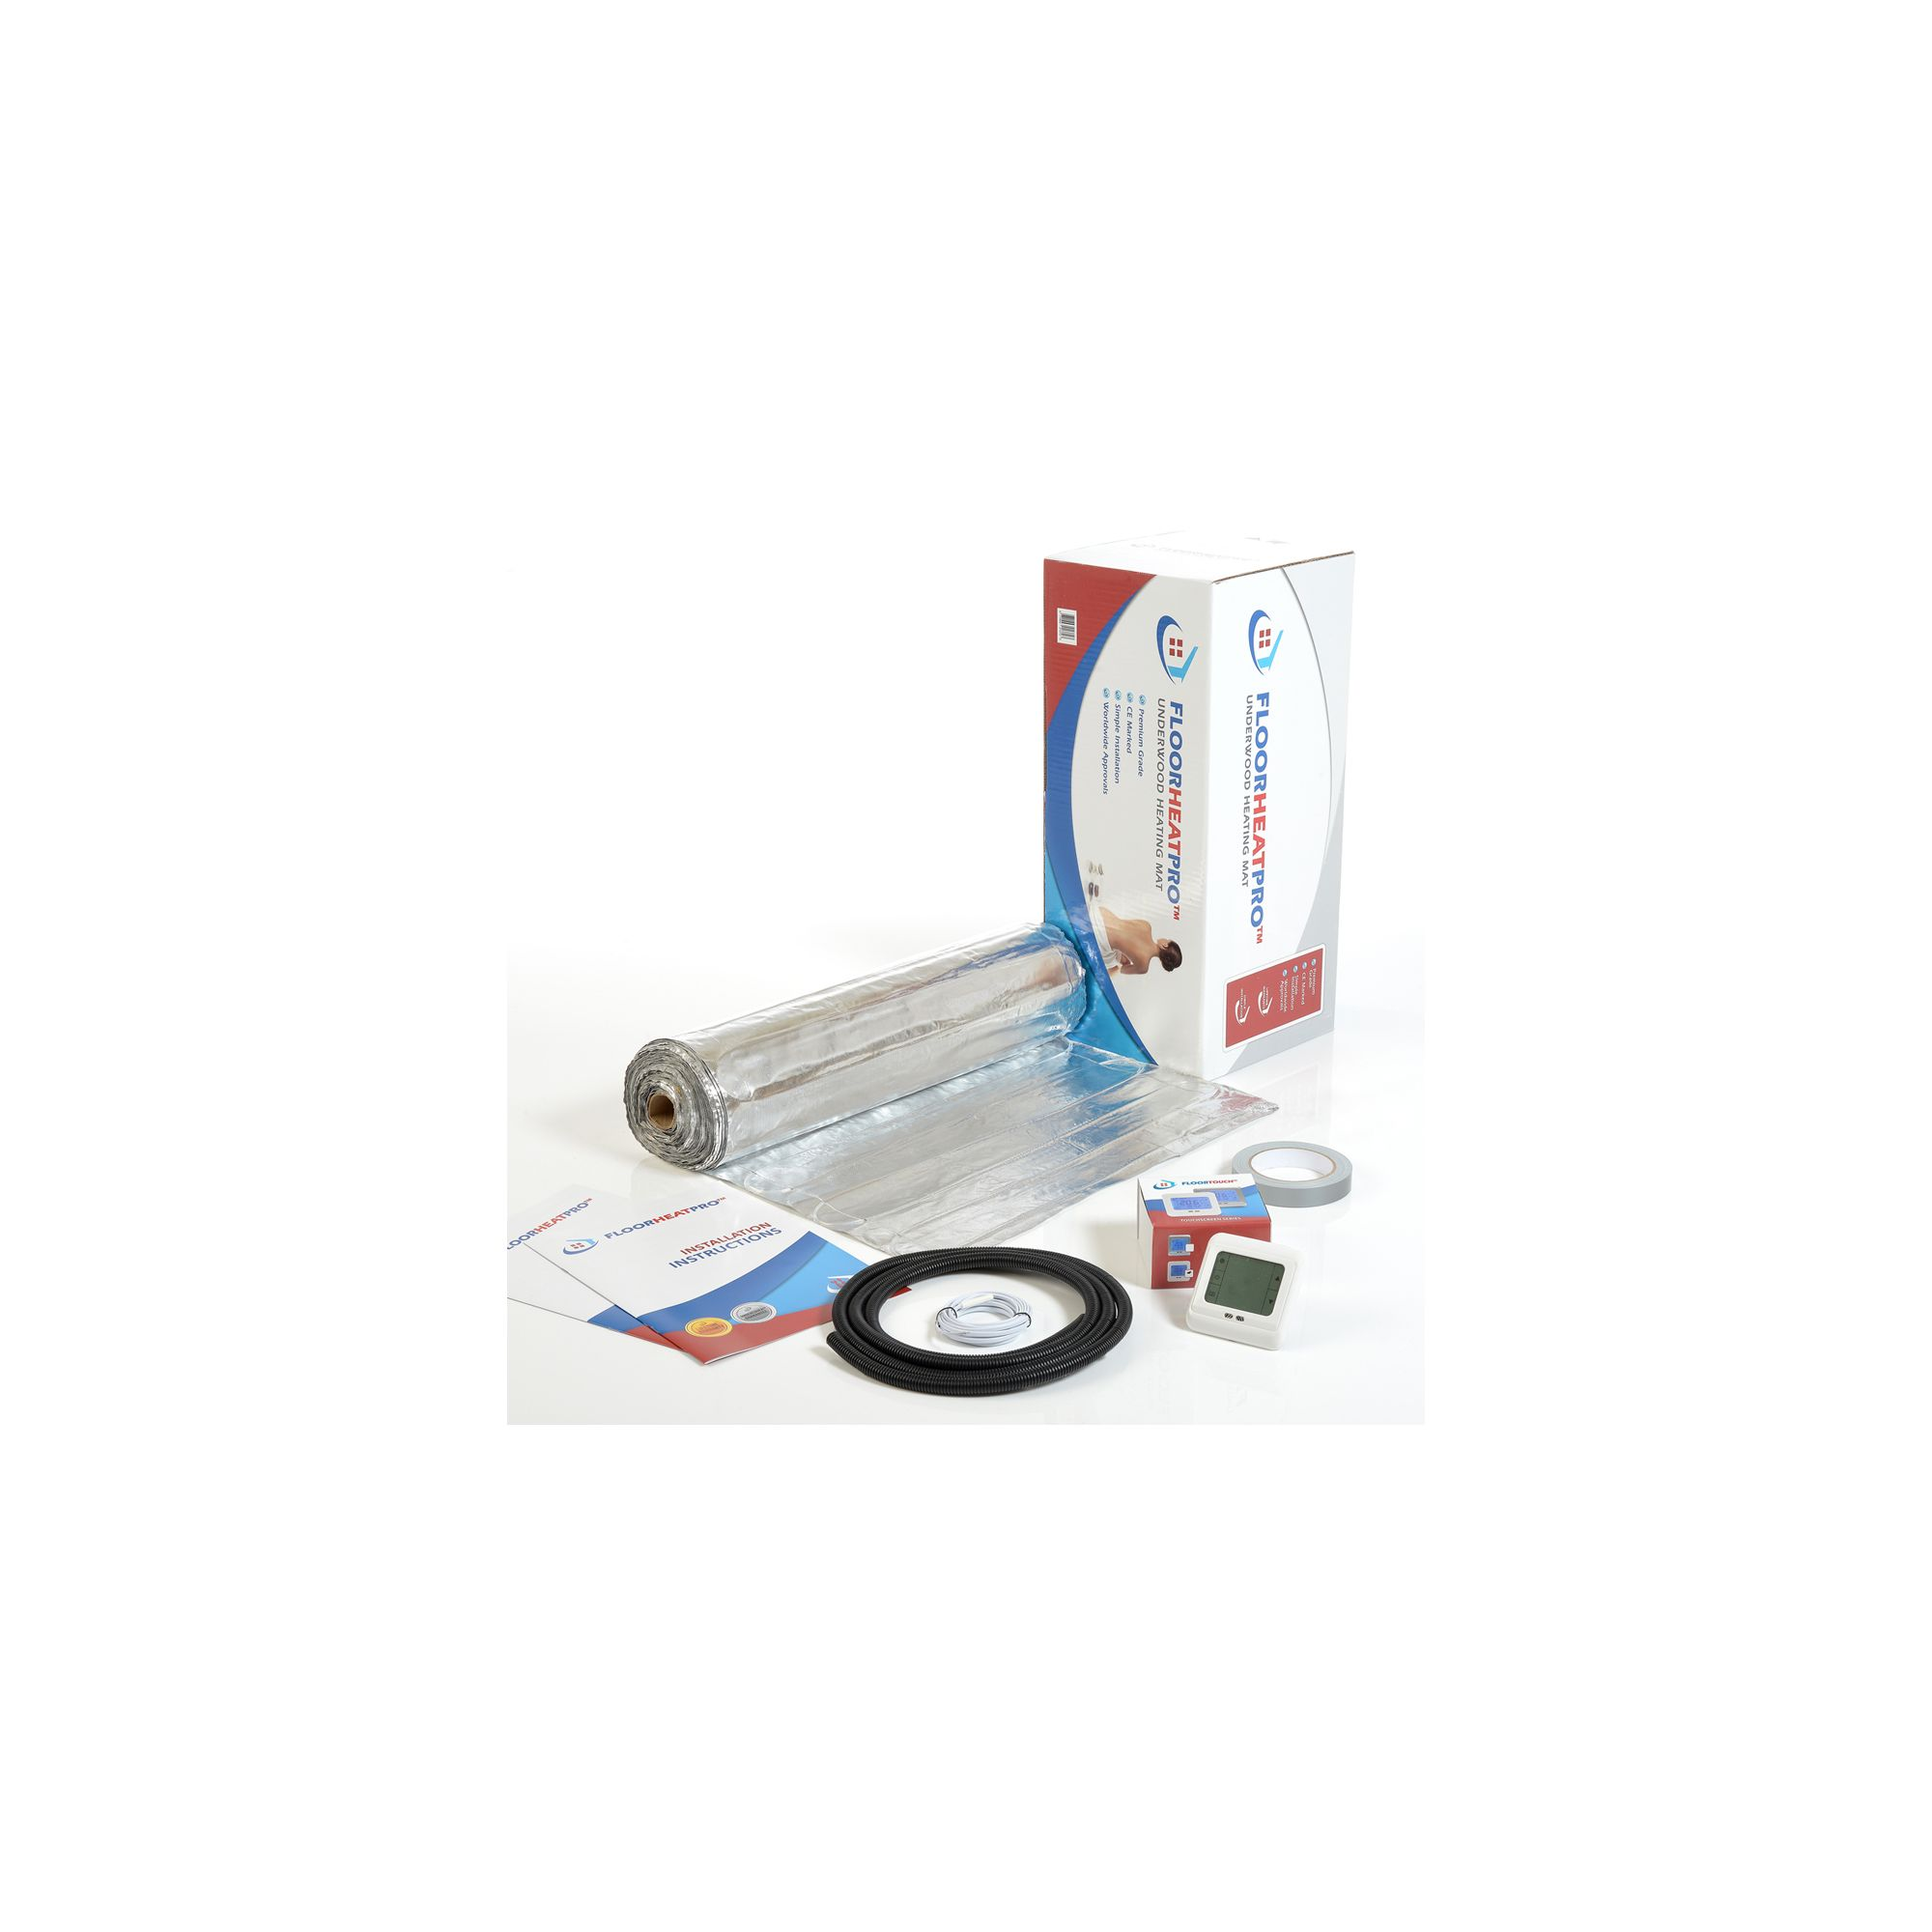 21.0 m2 - Underfloor Electric Heating Kit - Laminate at Tesco Direct